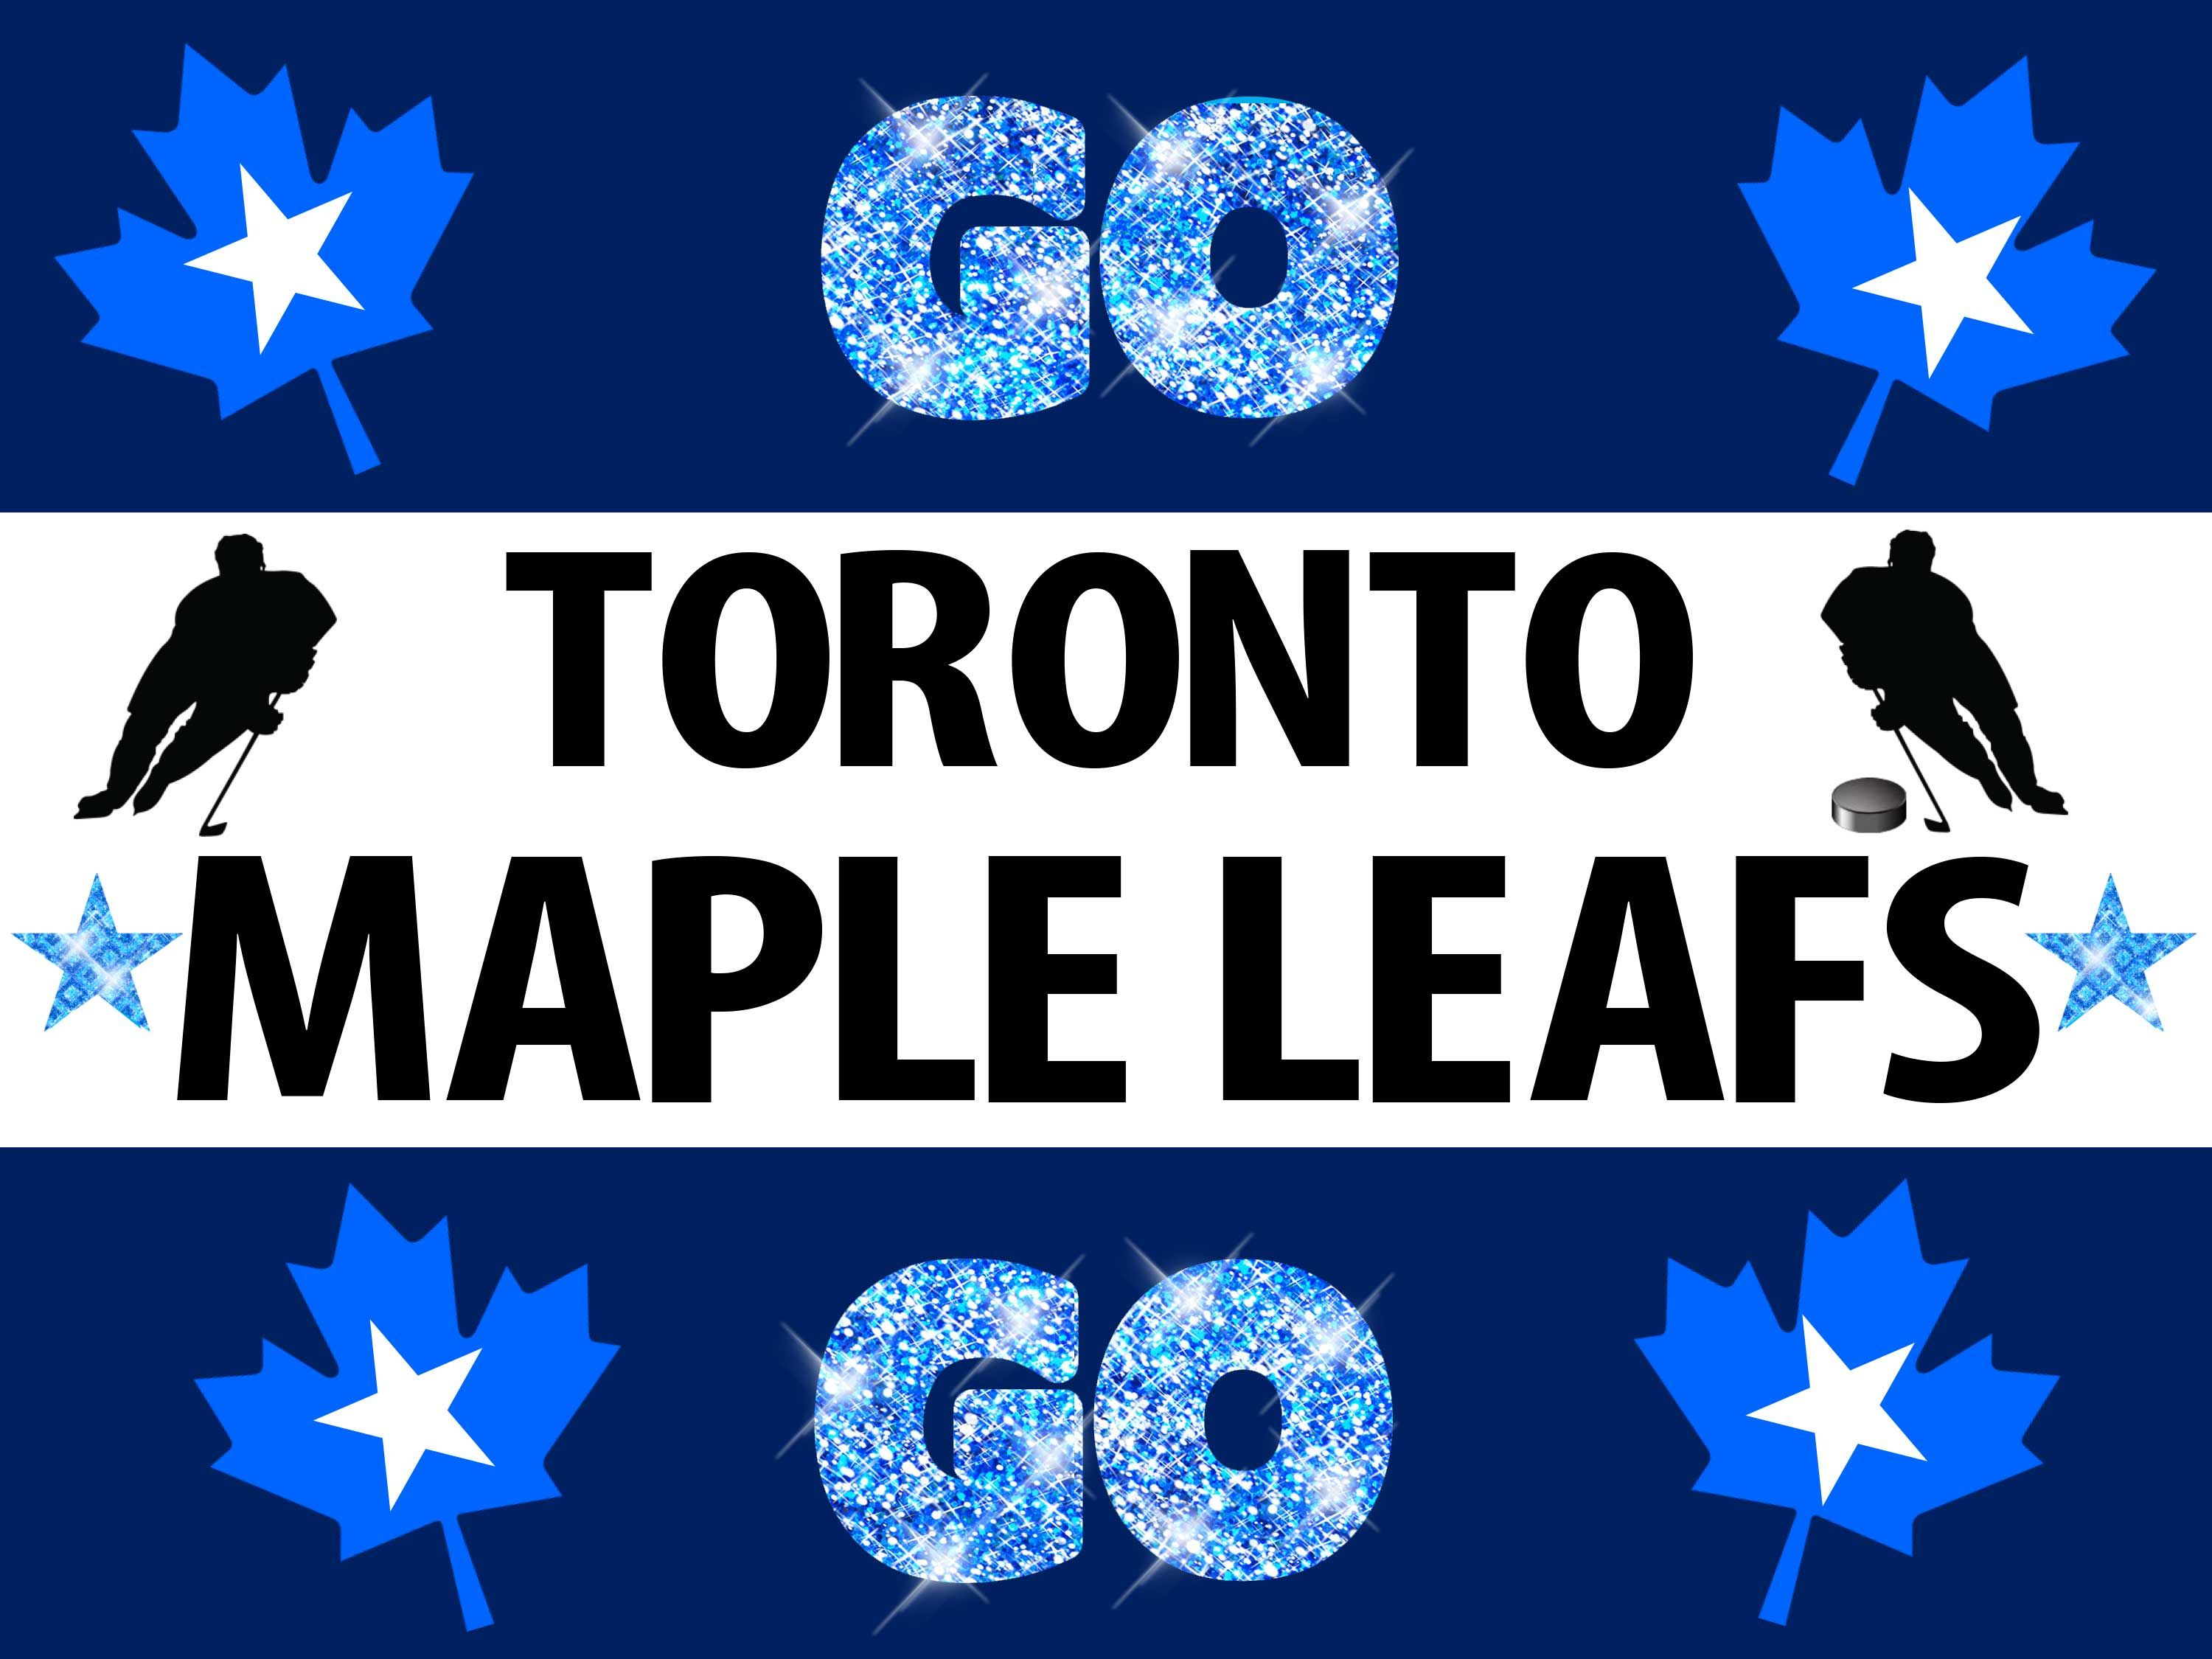 Toronto Maple Leafs Poster Idea Sports Poster Project